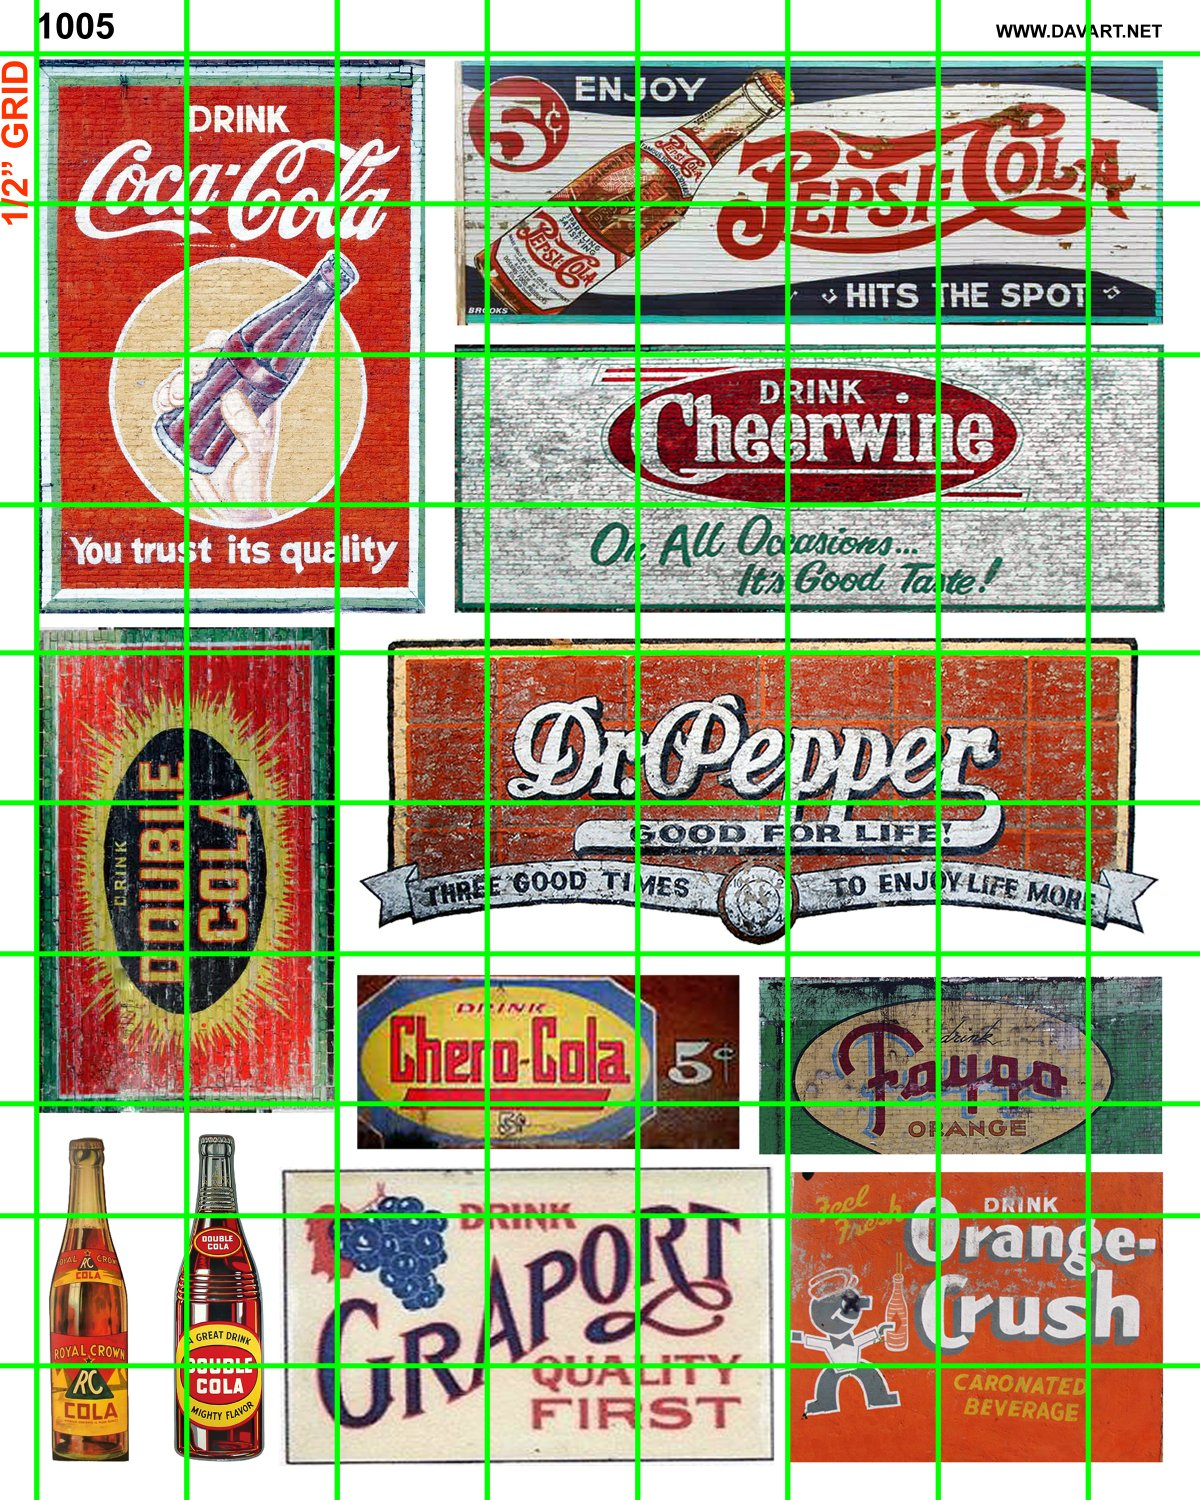 1005 - Assorted waterslide decals Soda, Cola and Coke building signage